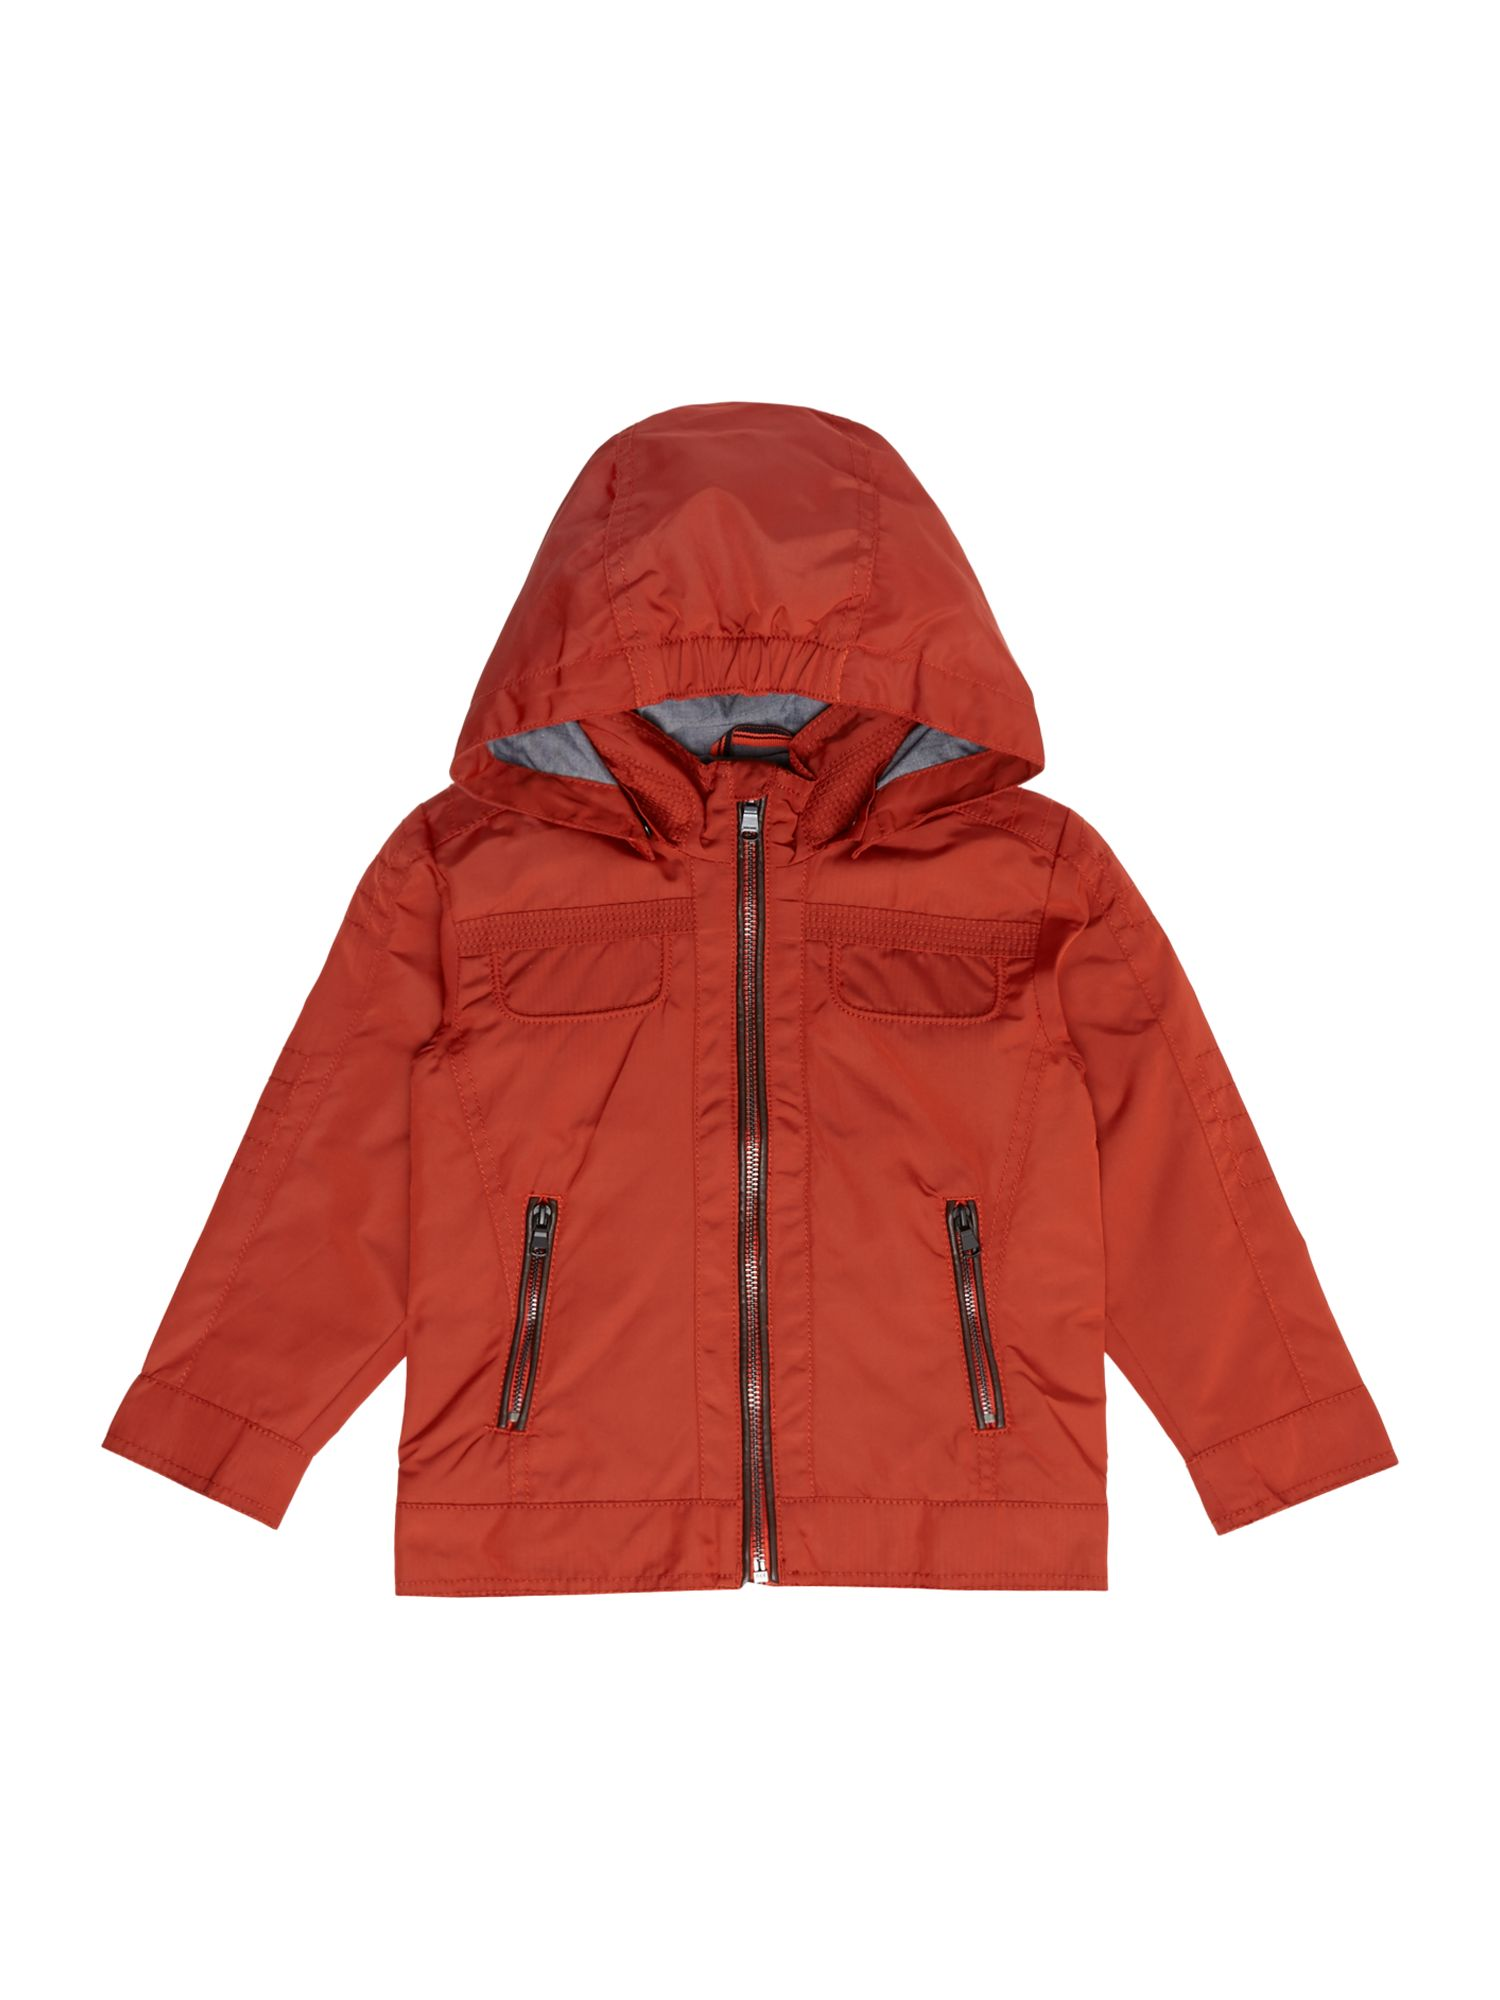 Hugo Boss Boys hooded jacket Orange